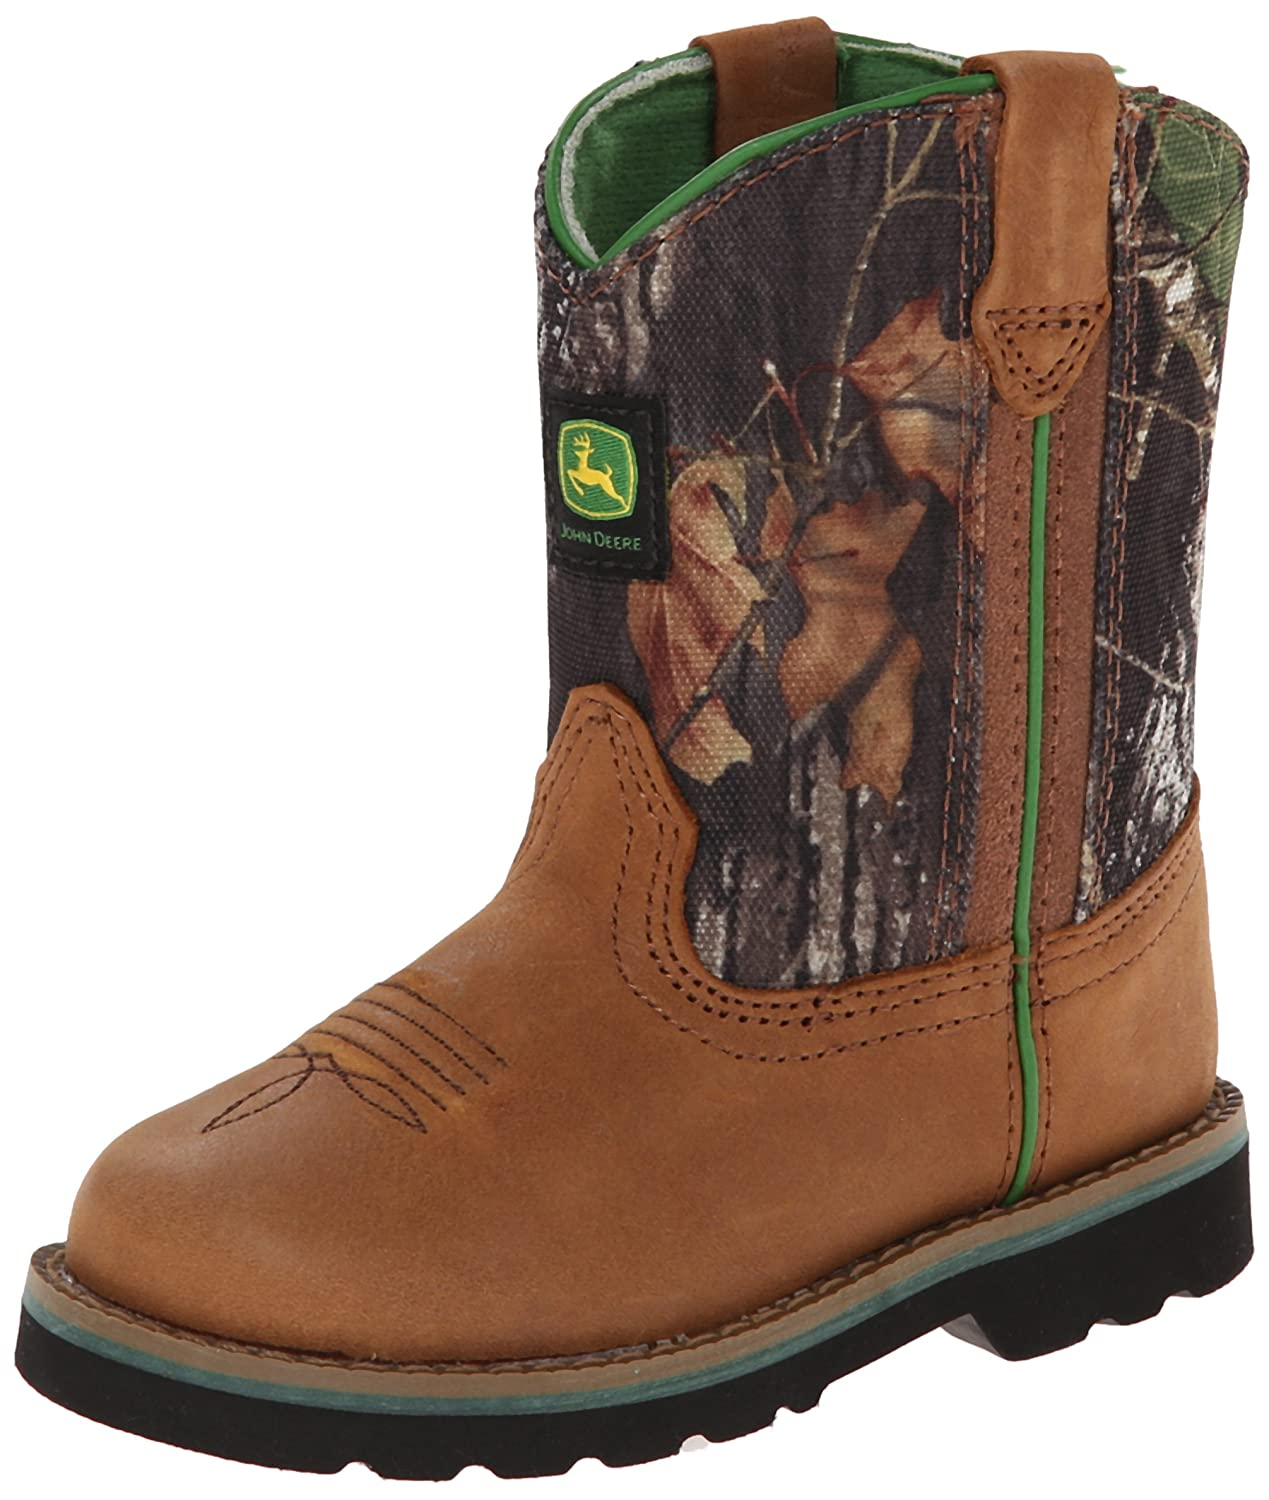 John Deere 1188 Western Boot (Toddler): Johnny Popper Boots